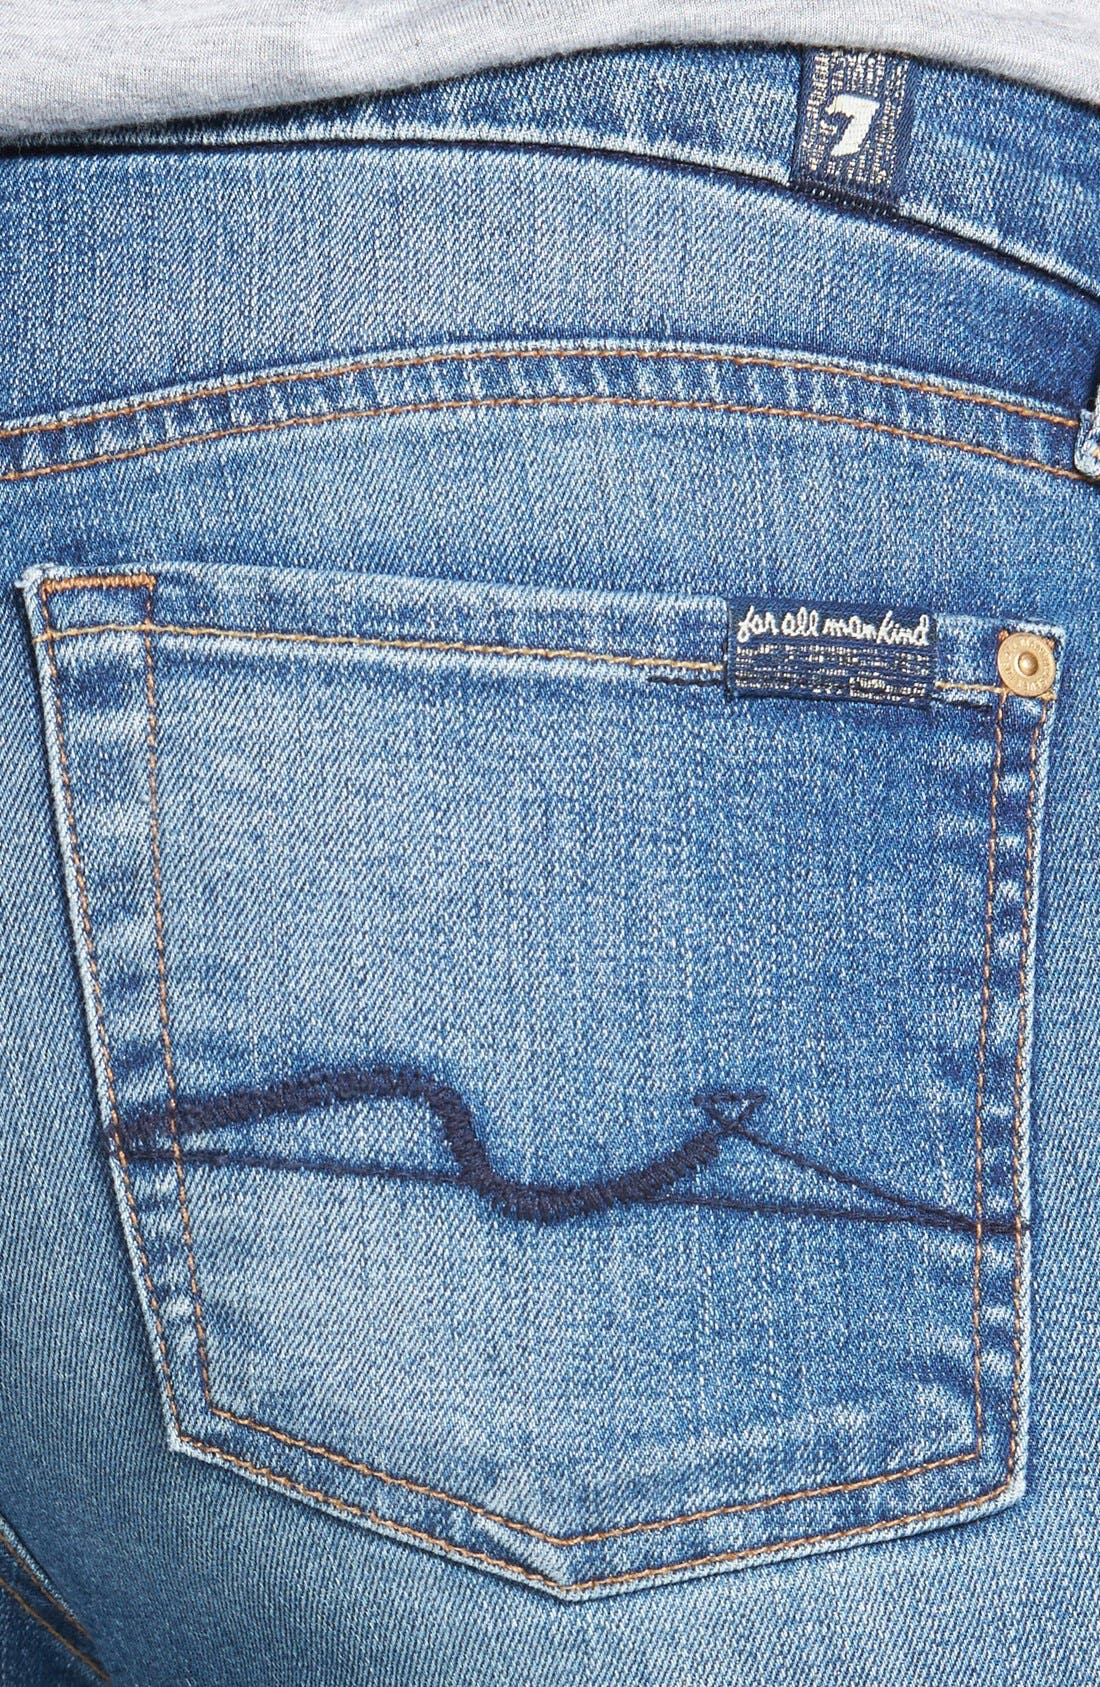 Alternate Image 3  - 7 For All Mankind® 'Kimmie' Bootcut Jeans